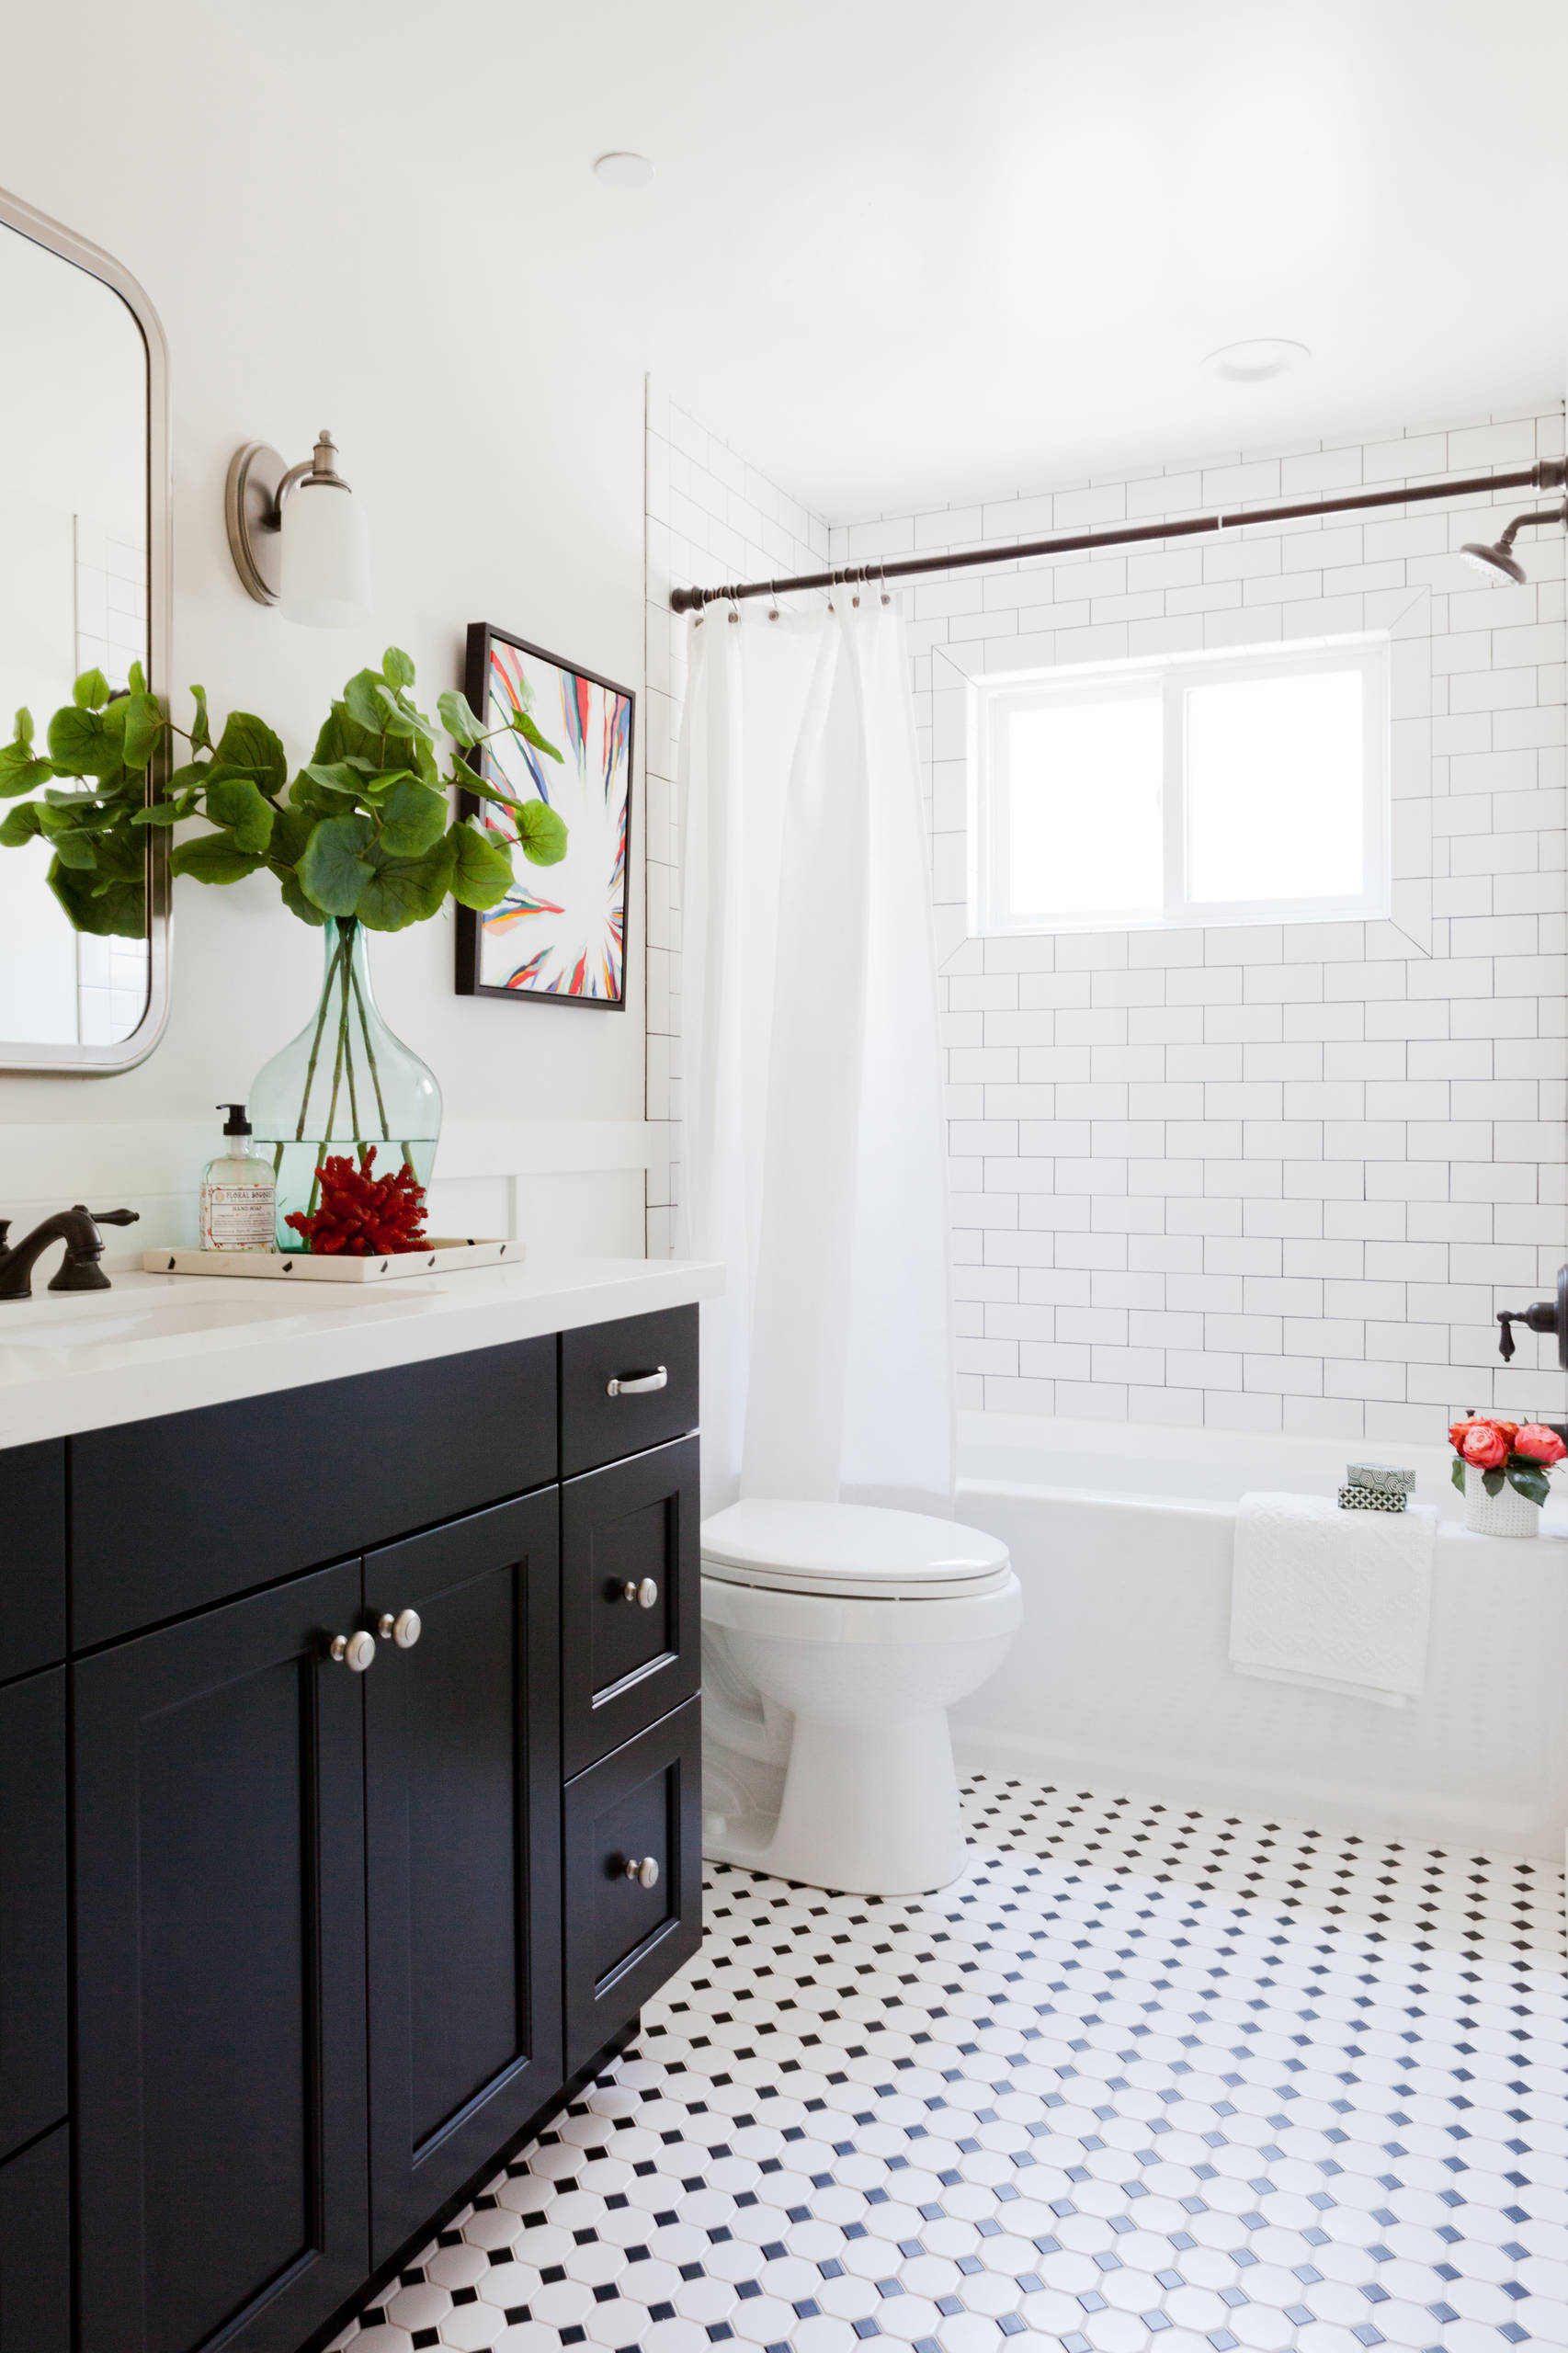 6 Beautiful Black And White Tile Bathroom Pictures & Ideas